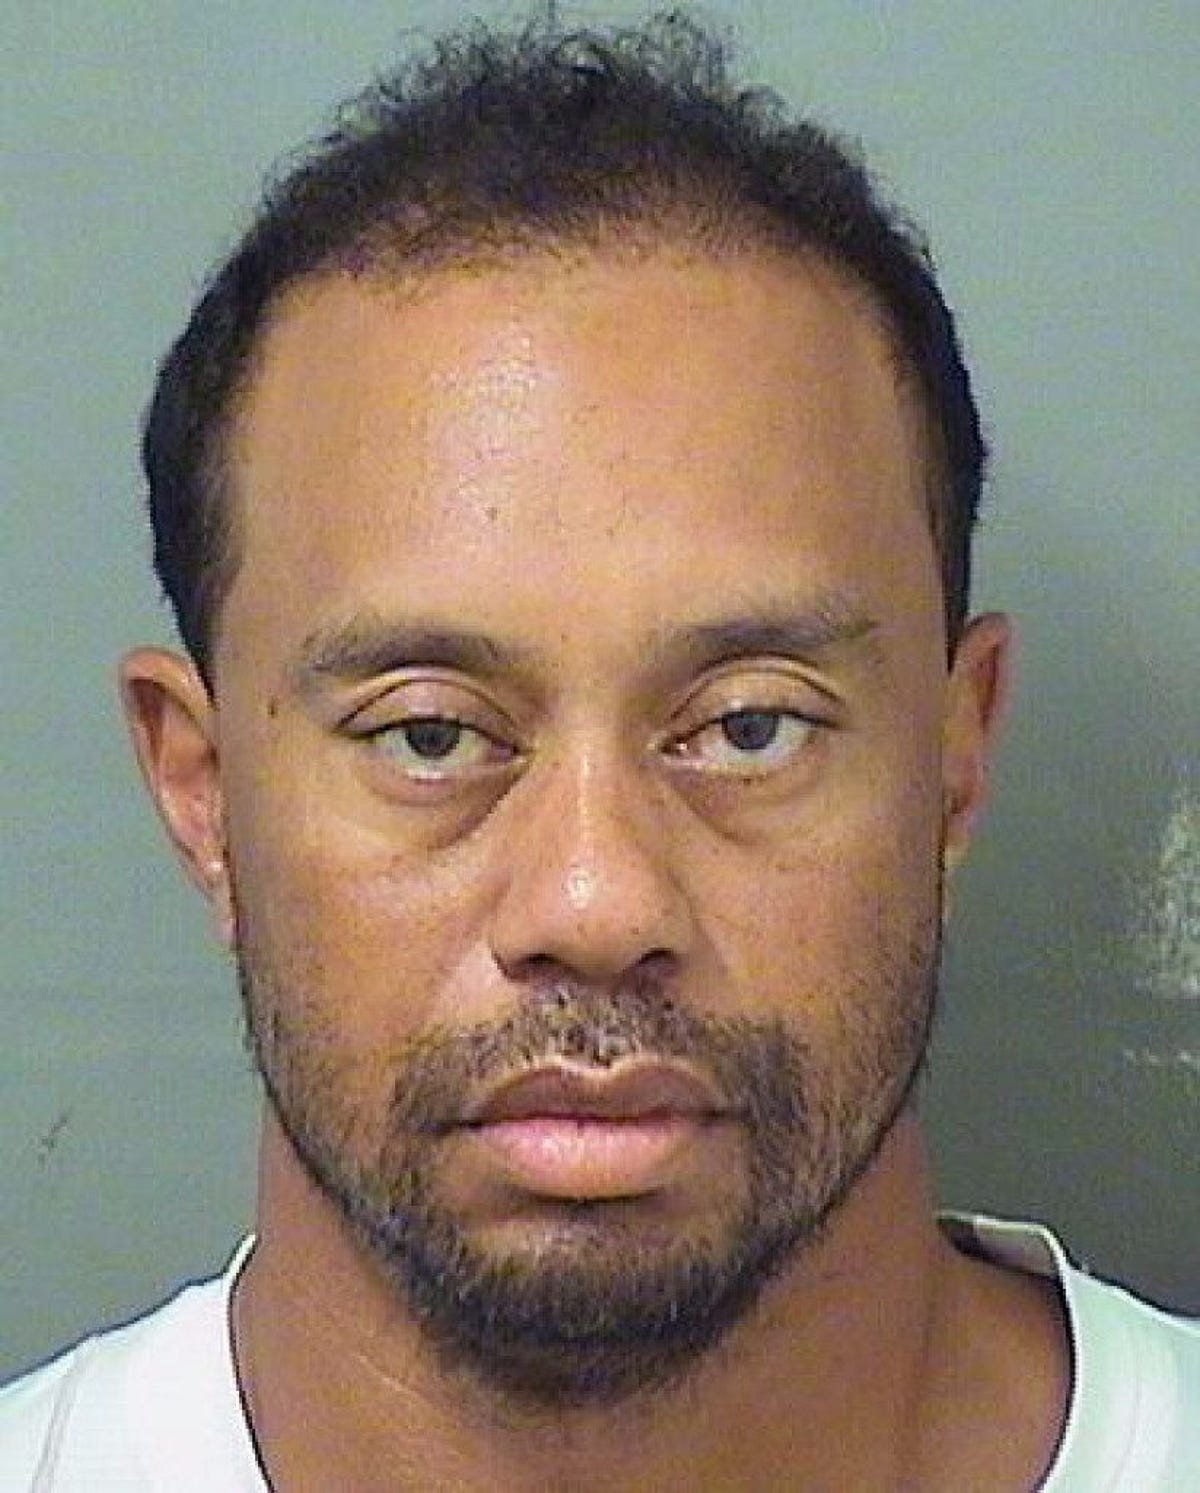 Latest photo of Tiger Woods a stunning contrast to one we